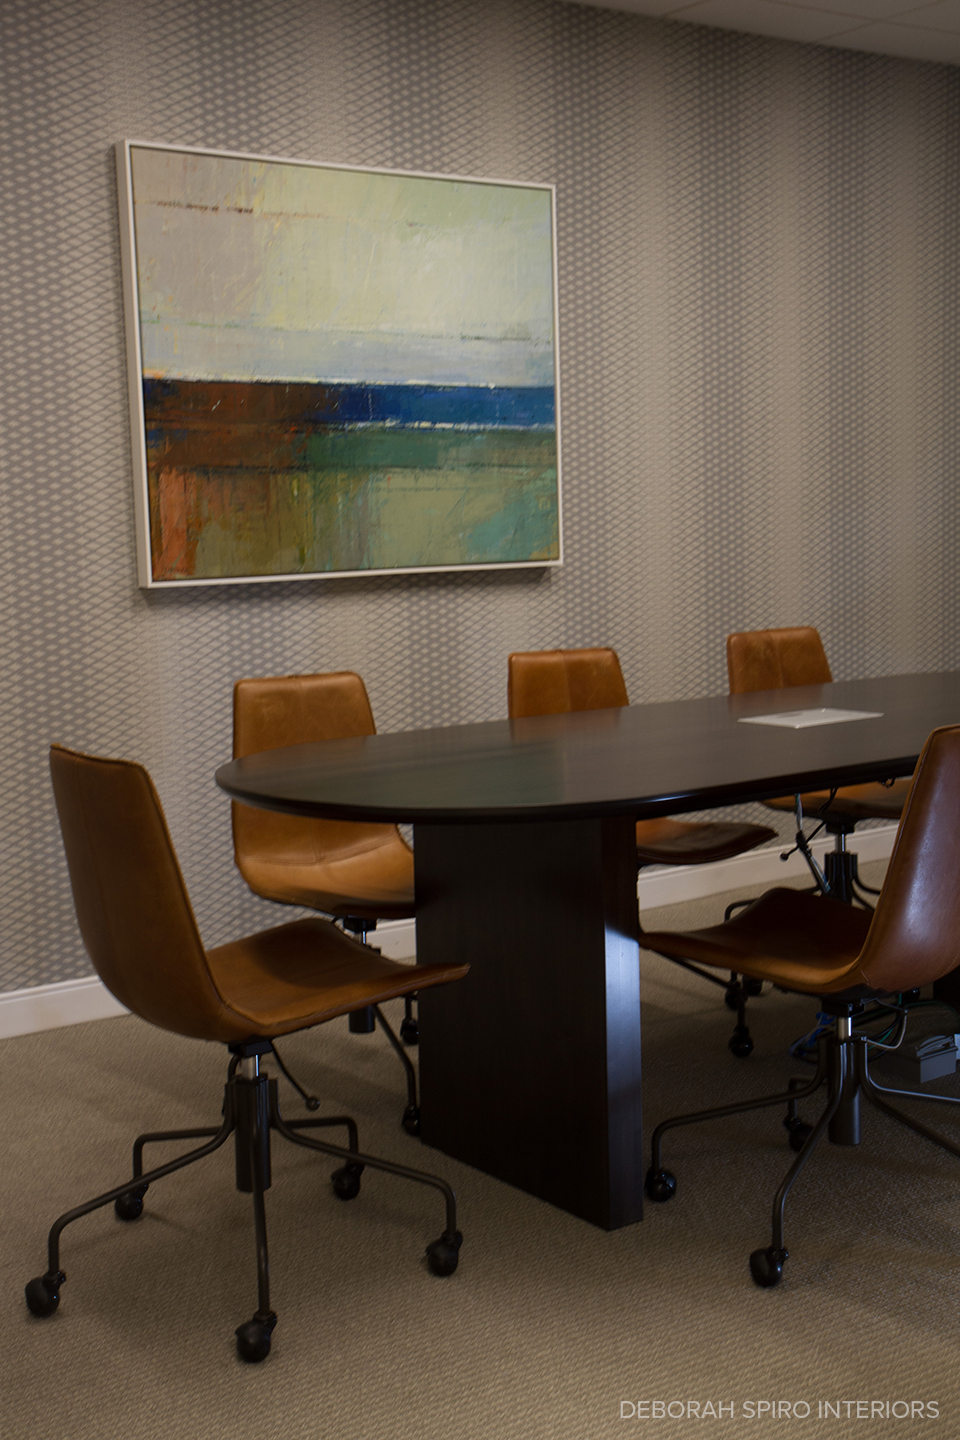 SSAM conference room 1 small conference room -3904.jpg